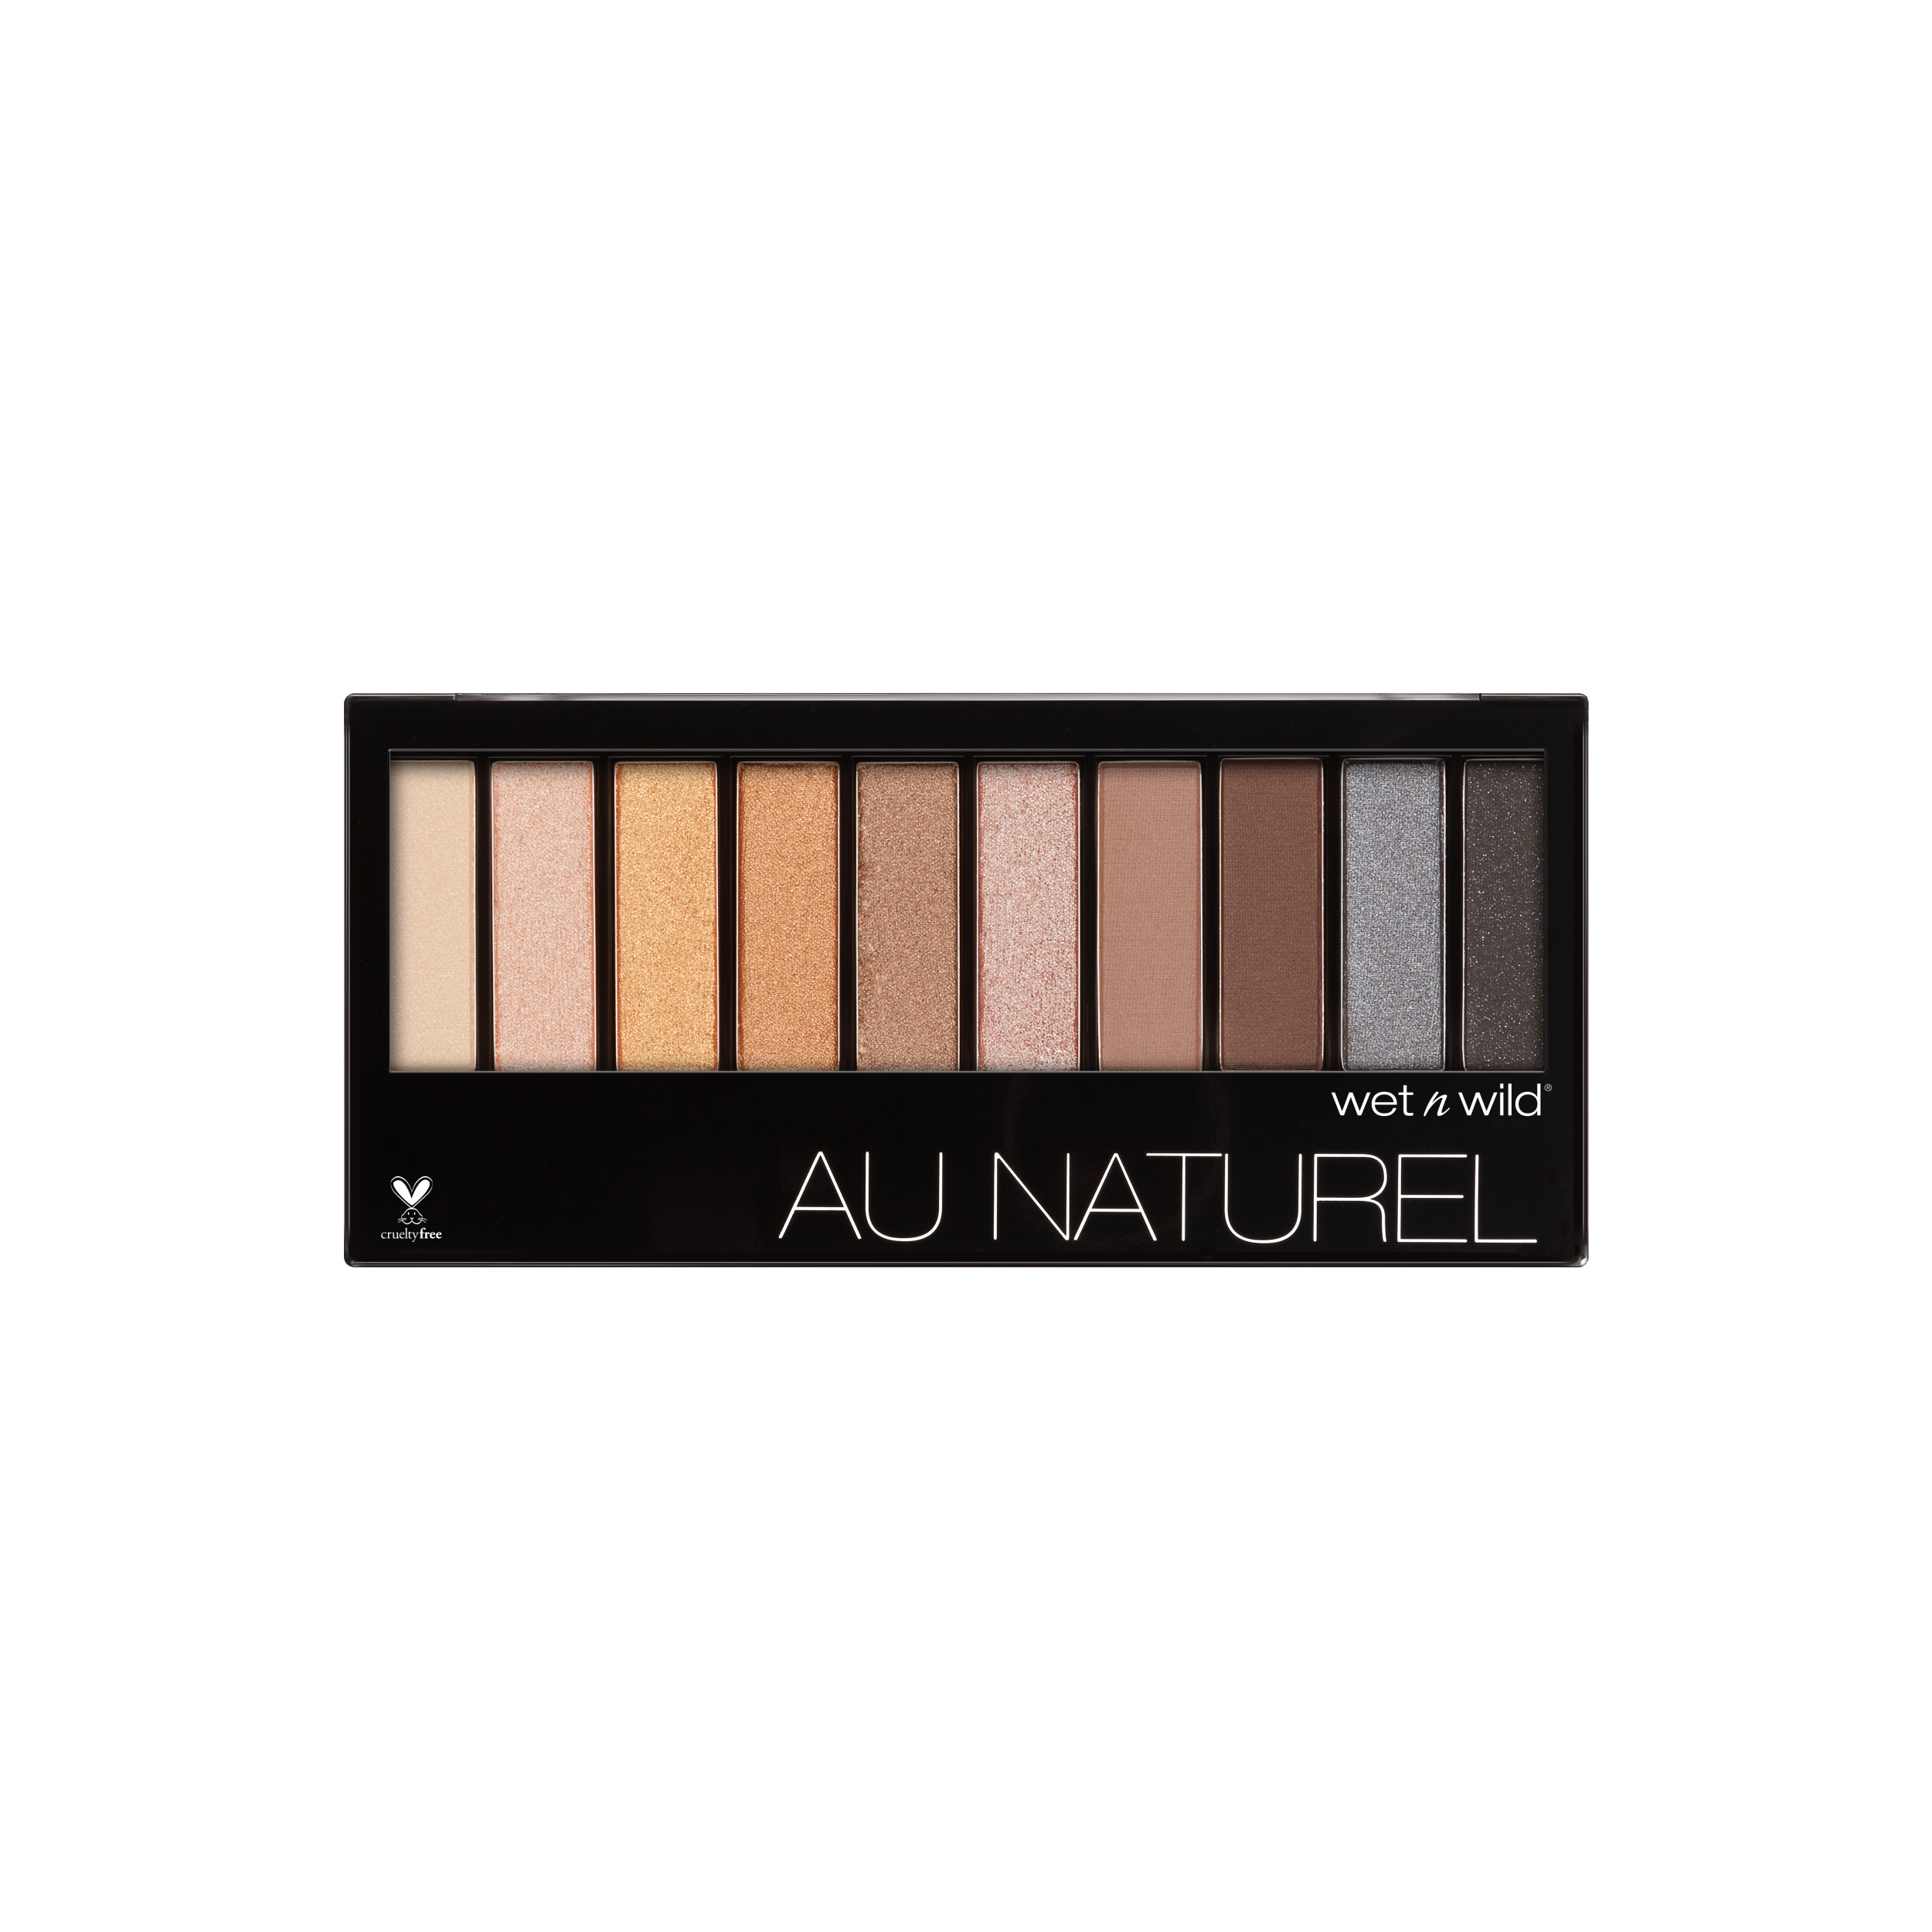 Nice 40 Color Eyeshadow Palette Silky Powder Professional Make Up Pallete Product Cosmetics Smoky/warm Color With Traditional Methods Beauty Essentials